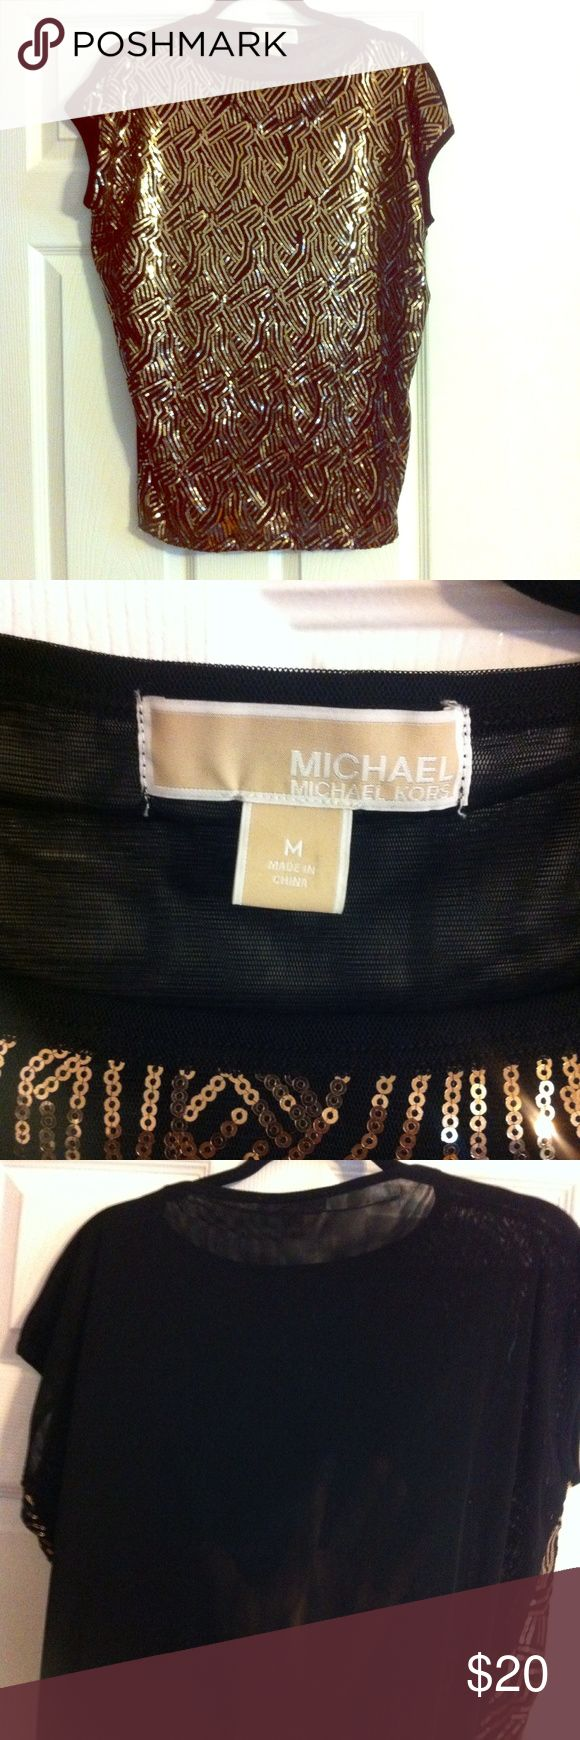 Sparkle in gold Michael Kors Gold sequin sheer back Michael Kors party top. Sequins are all in tack, no loose threads. Like new. Only worn once. Michael Kors Tops Blouses